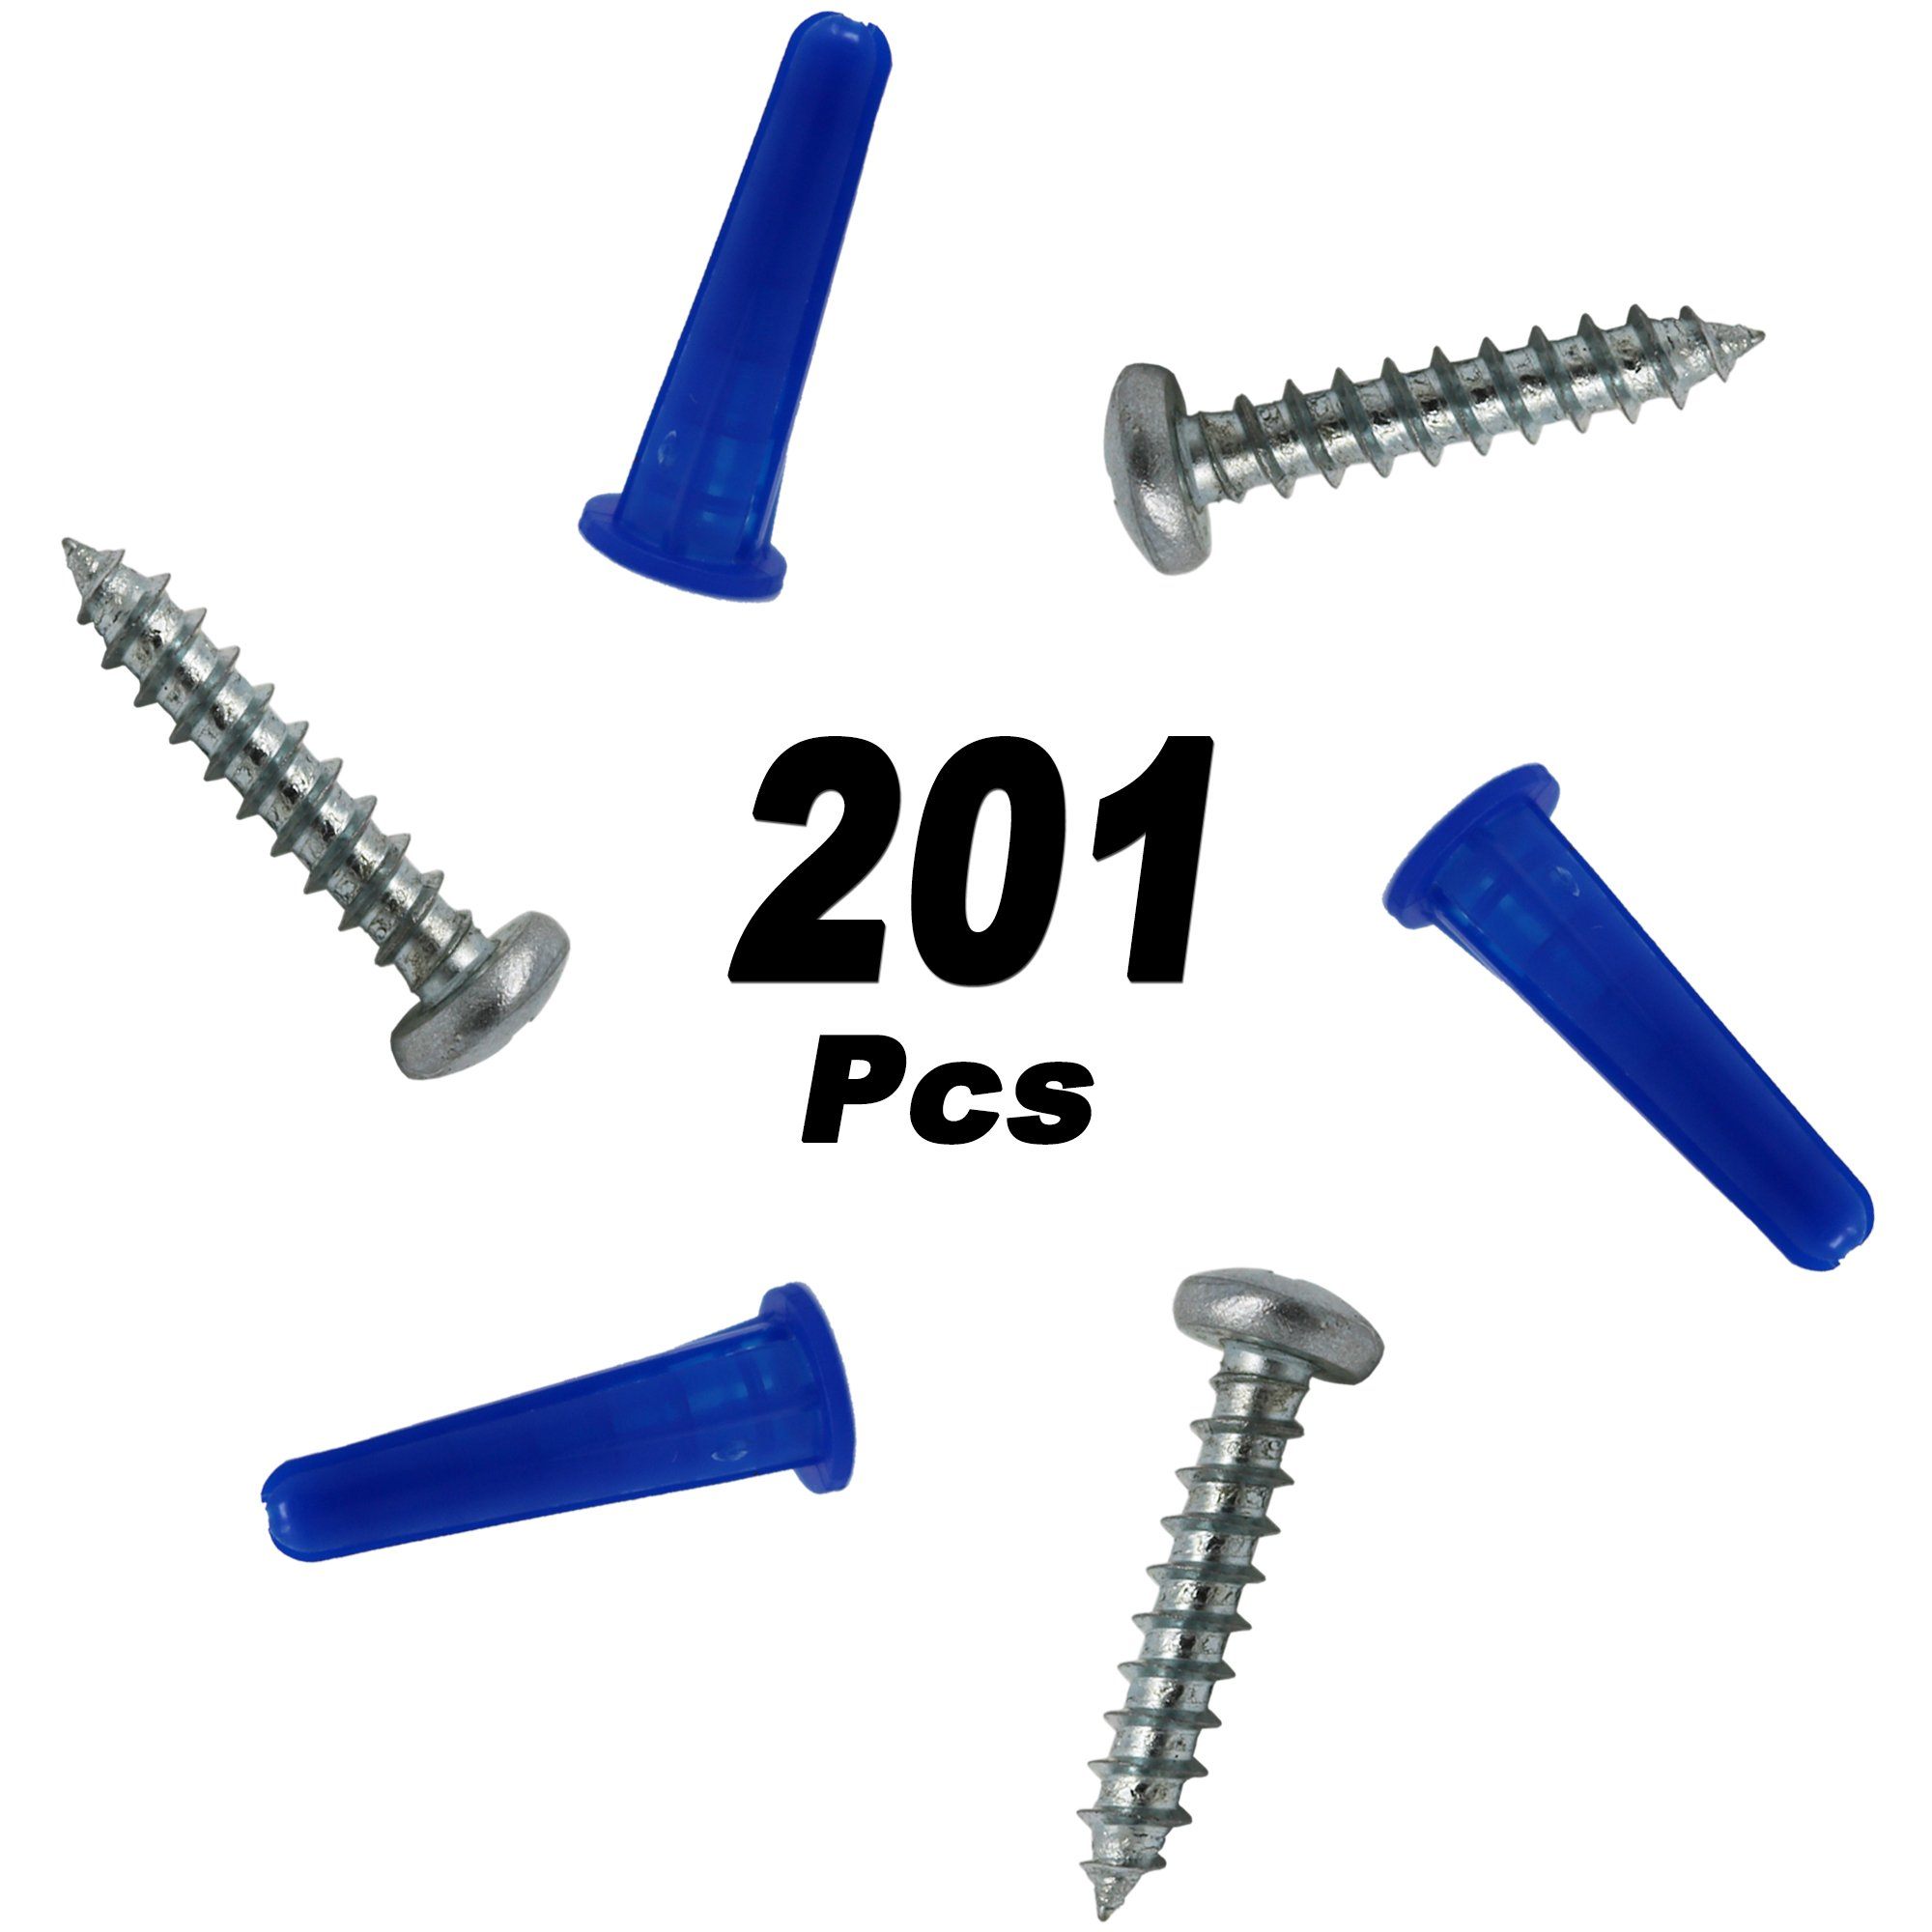 T.K.Excellent Blue Conical Plastic Anchor and Self Tapping Screw and Masonry Drill Bit,201 Pieces by T.K.excellent (Image #7)